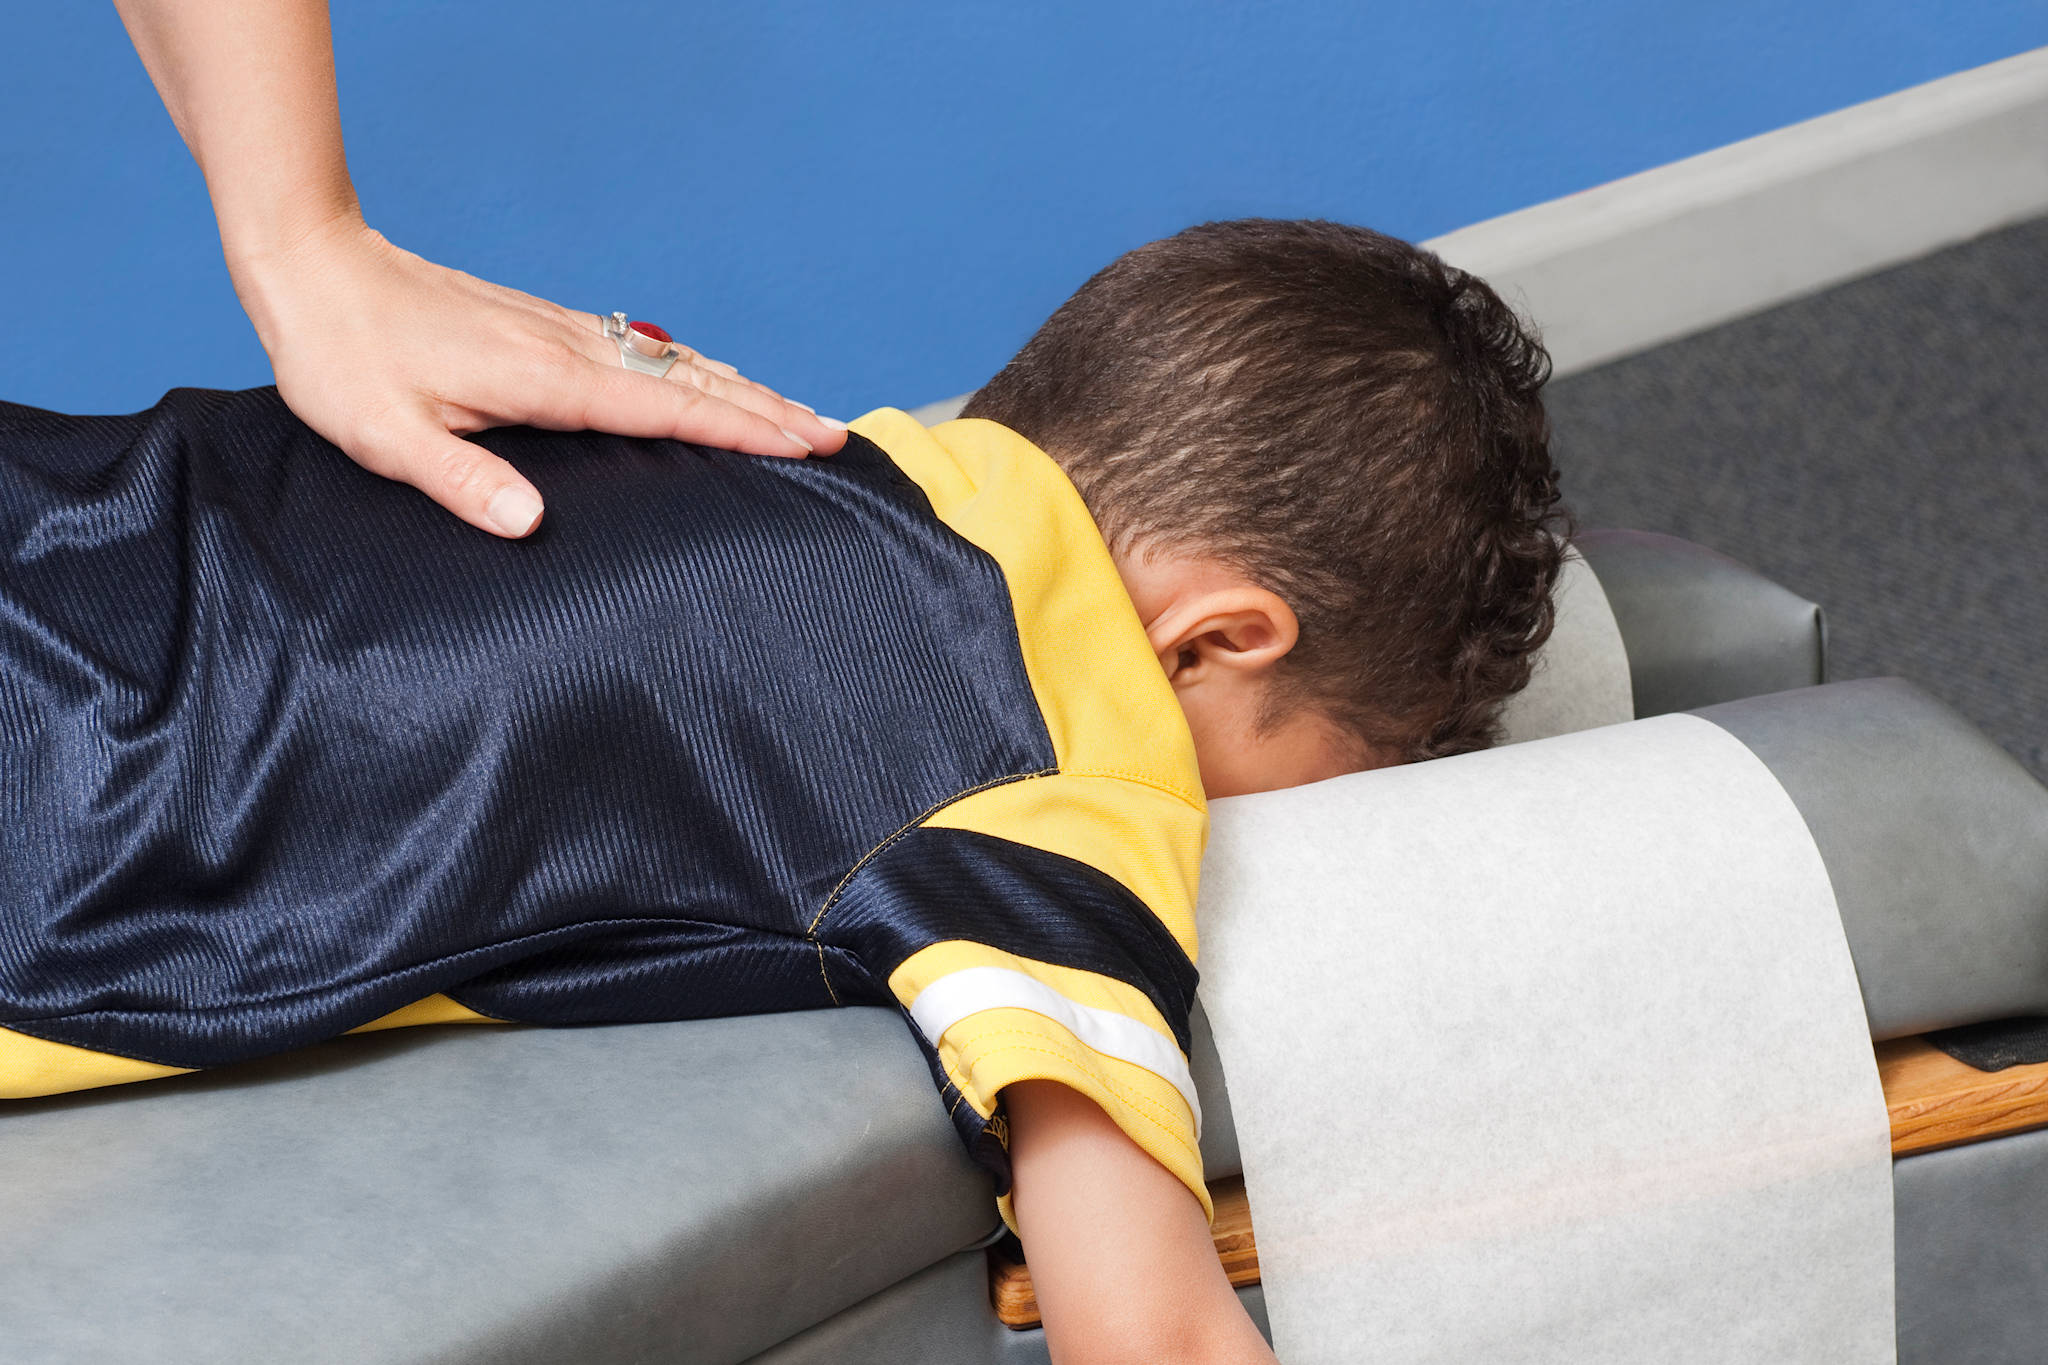 Kids and Back Pain